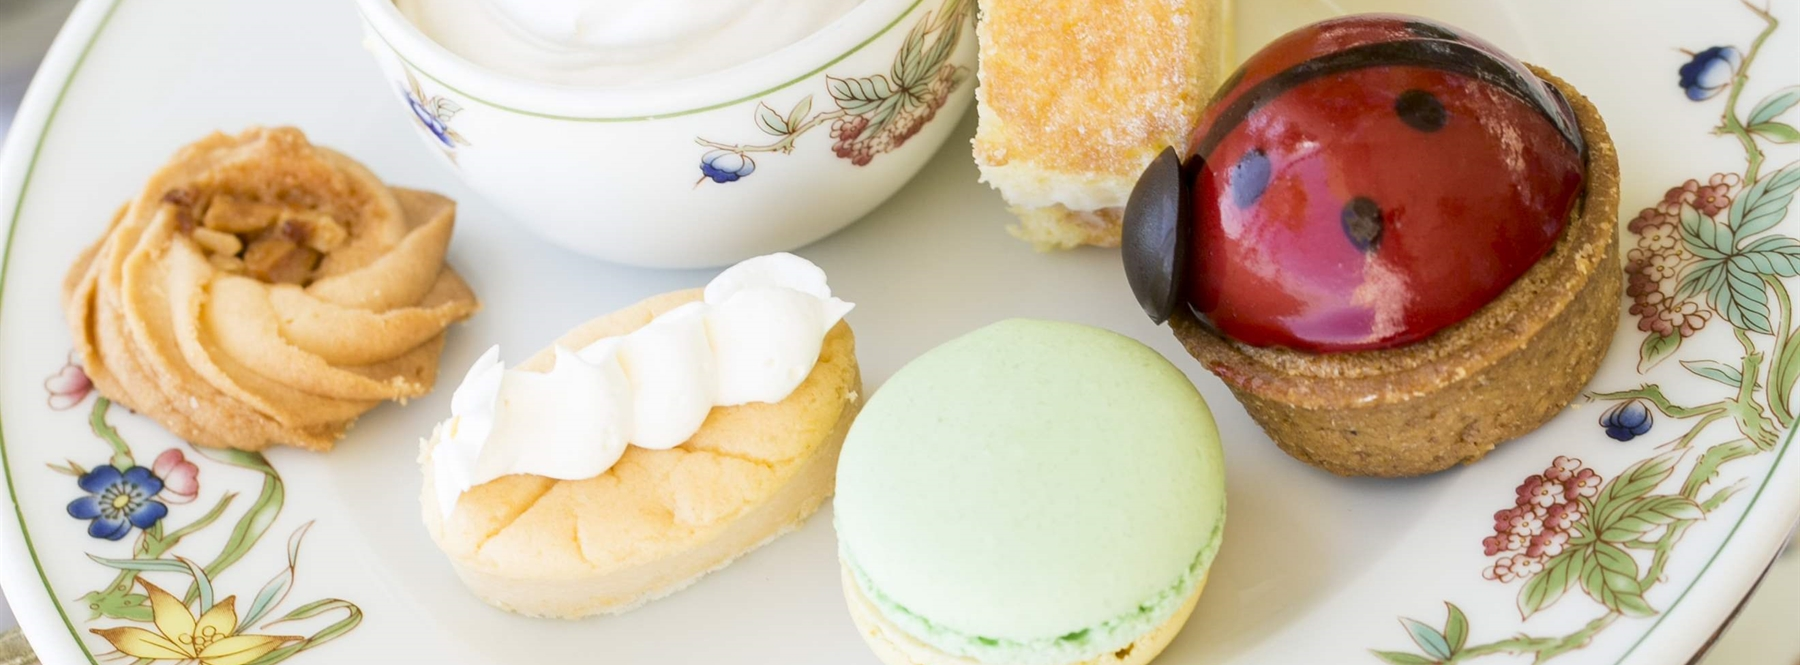 sample sweets and small bites to your hearts delight with our moana classic tea set